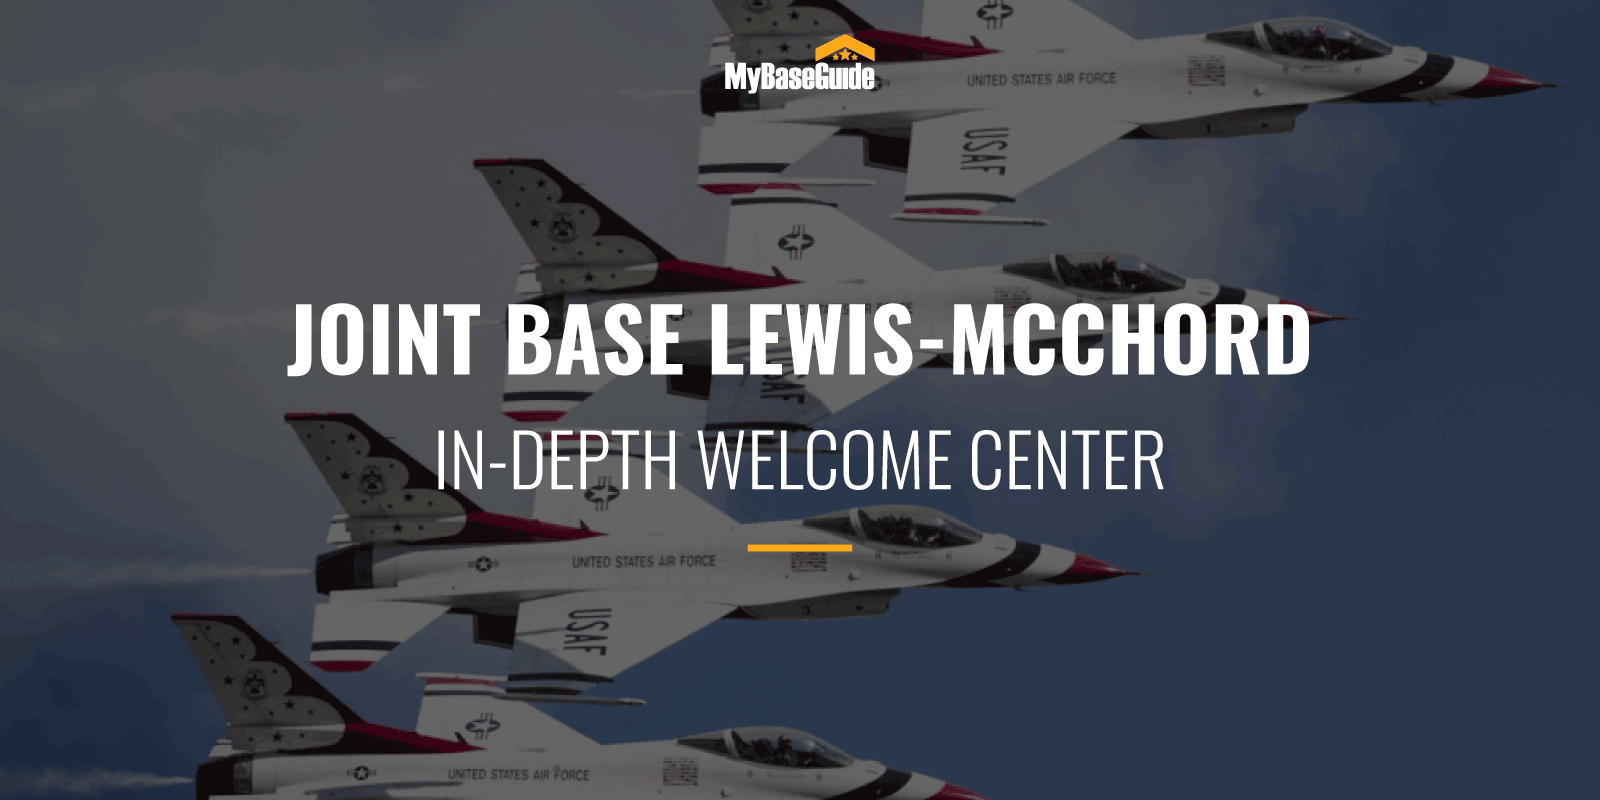 Joint Base Lewis McChord In-Depth Welcome Center